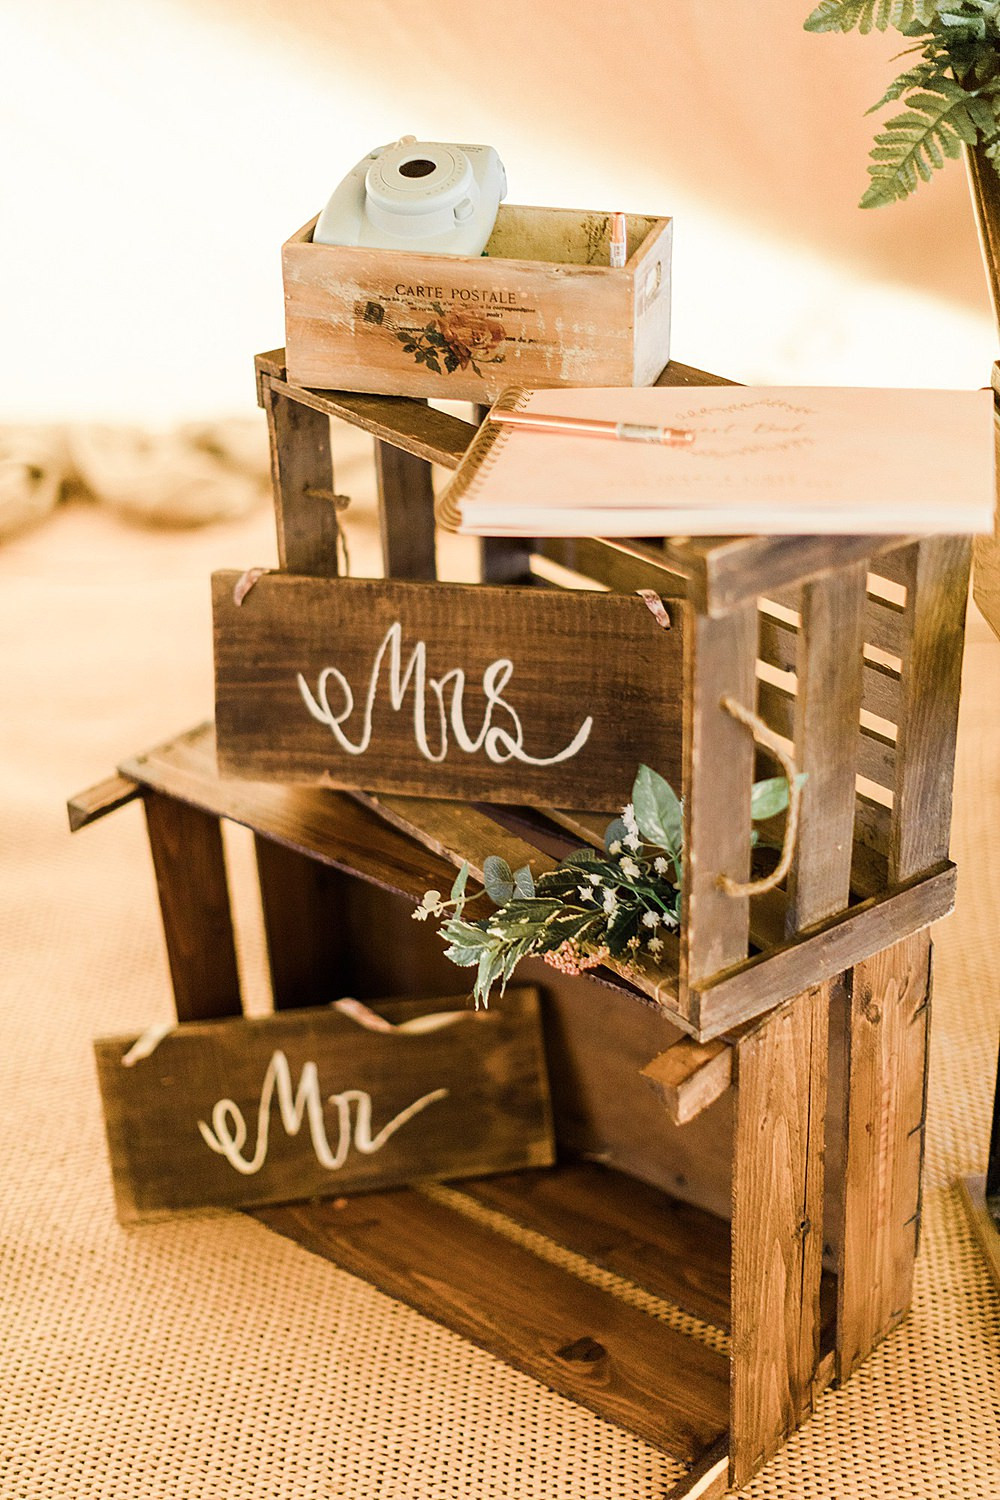 Wooden Rustic Crates Decor Sign Chiltern Open Air Museum Wedding Terri & Lori Fine Art Photography